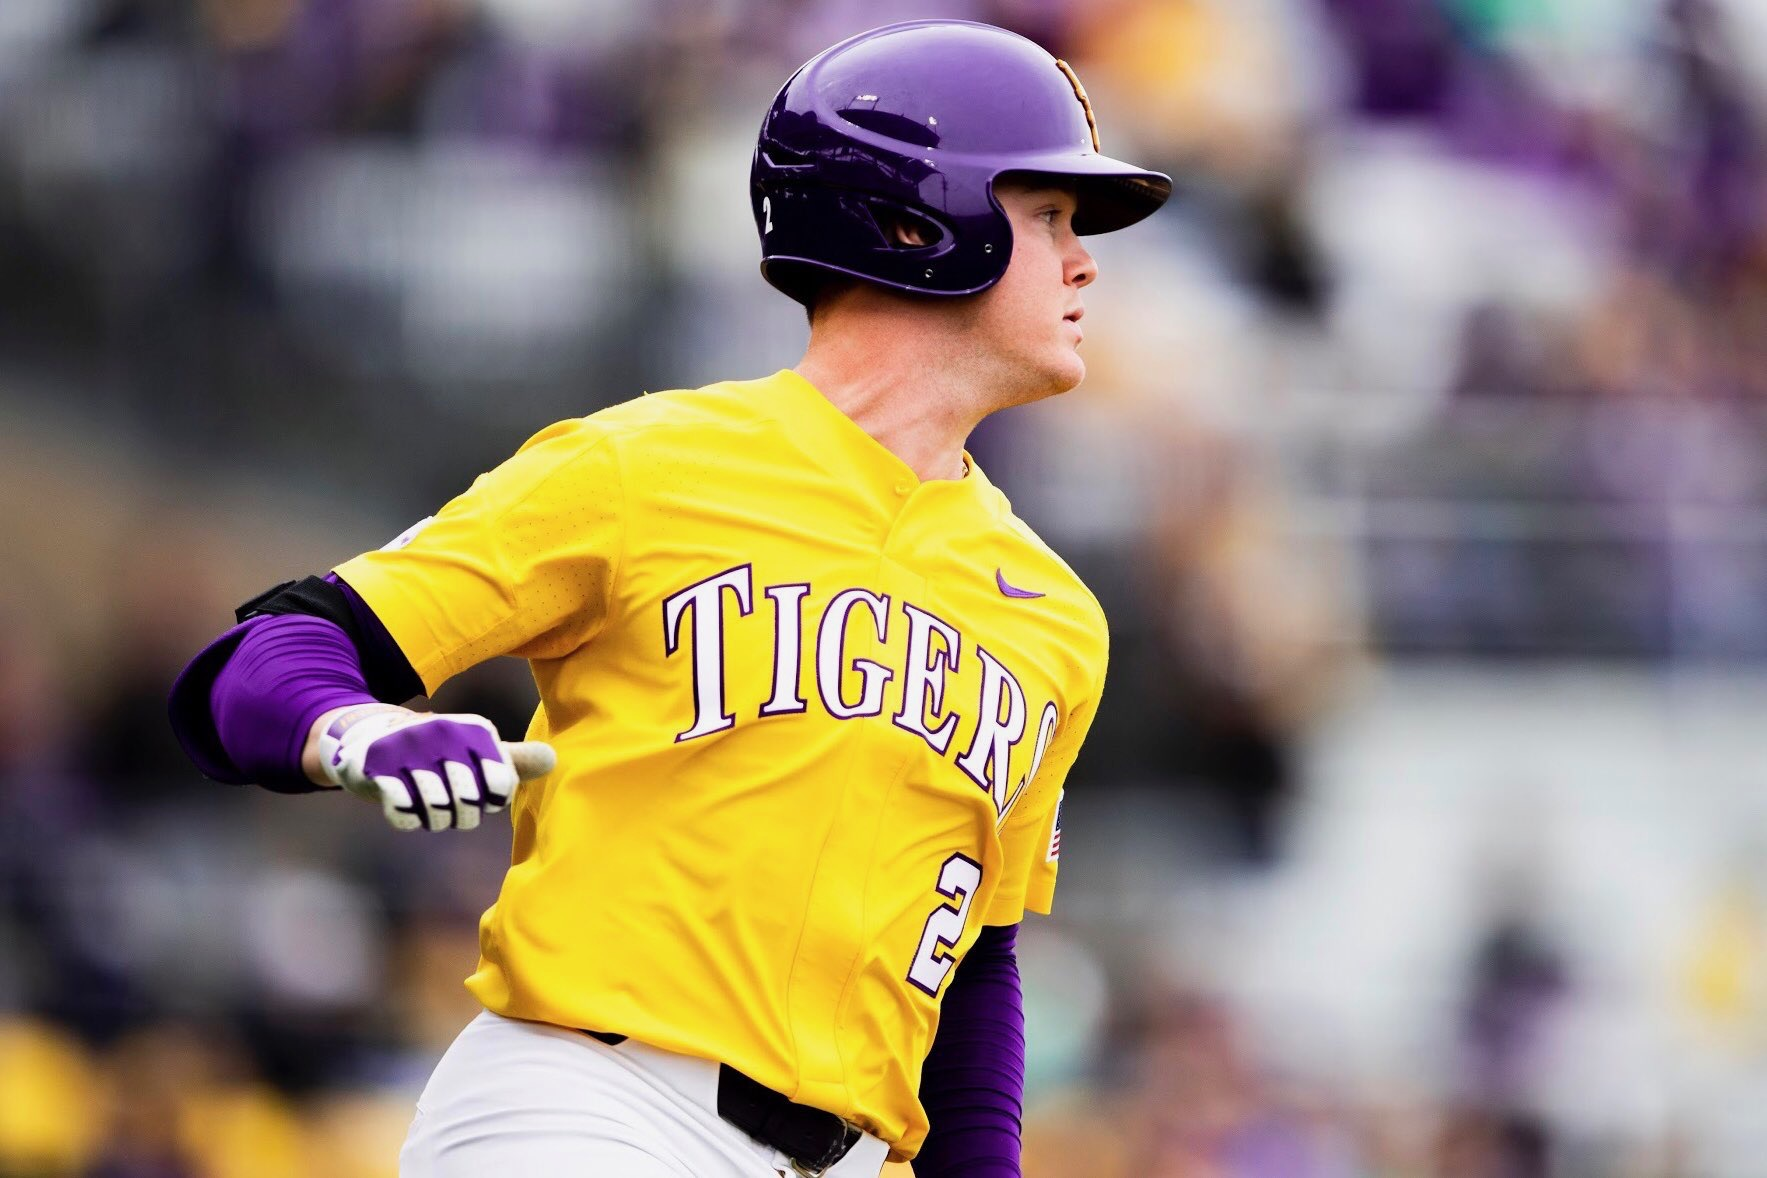 LSU beats Nicholls on walk-off double from Cabrera